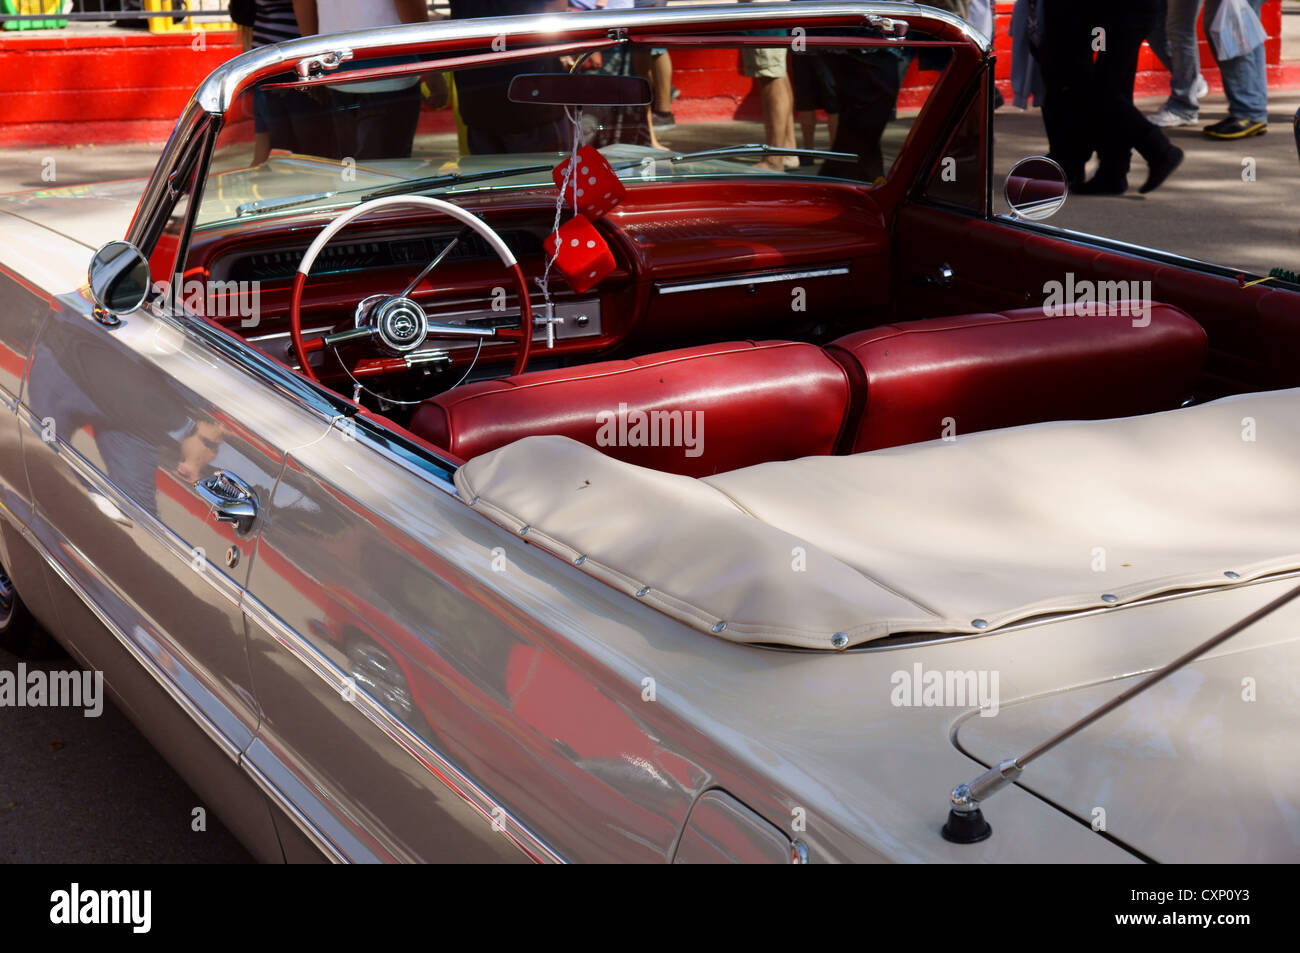 Classic Car Show 1964 Chevrolet Impala Chevy New Mexico State Fair Stock Photo Alamy